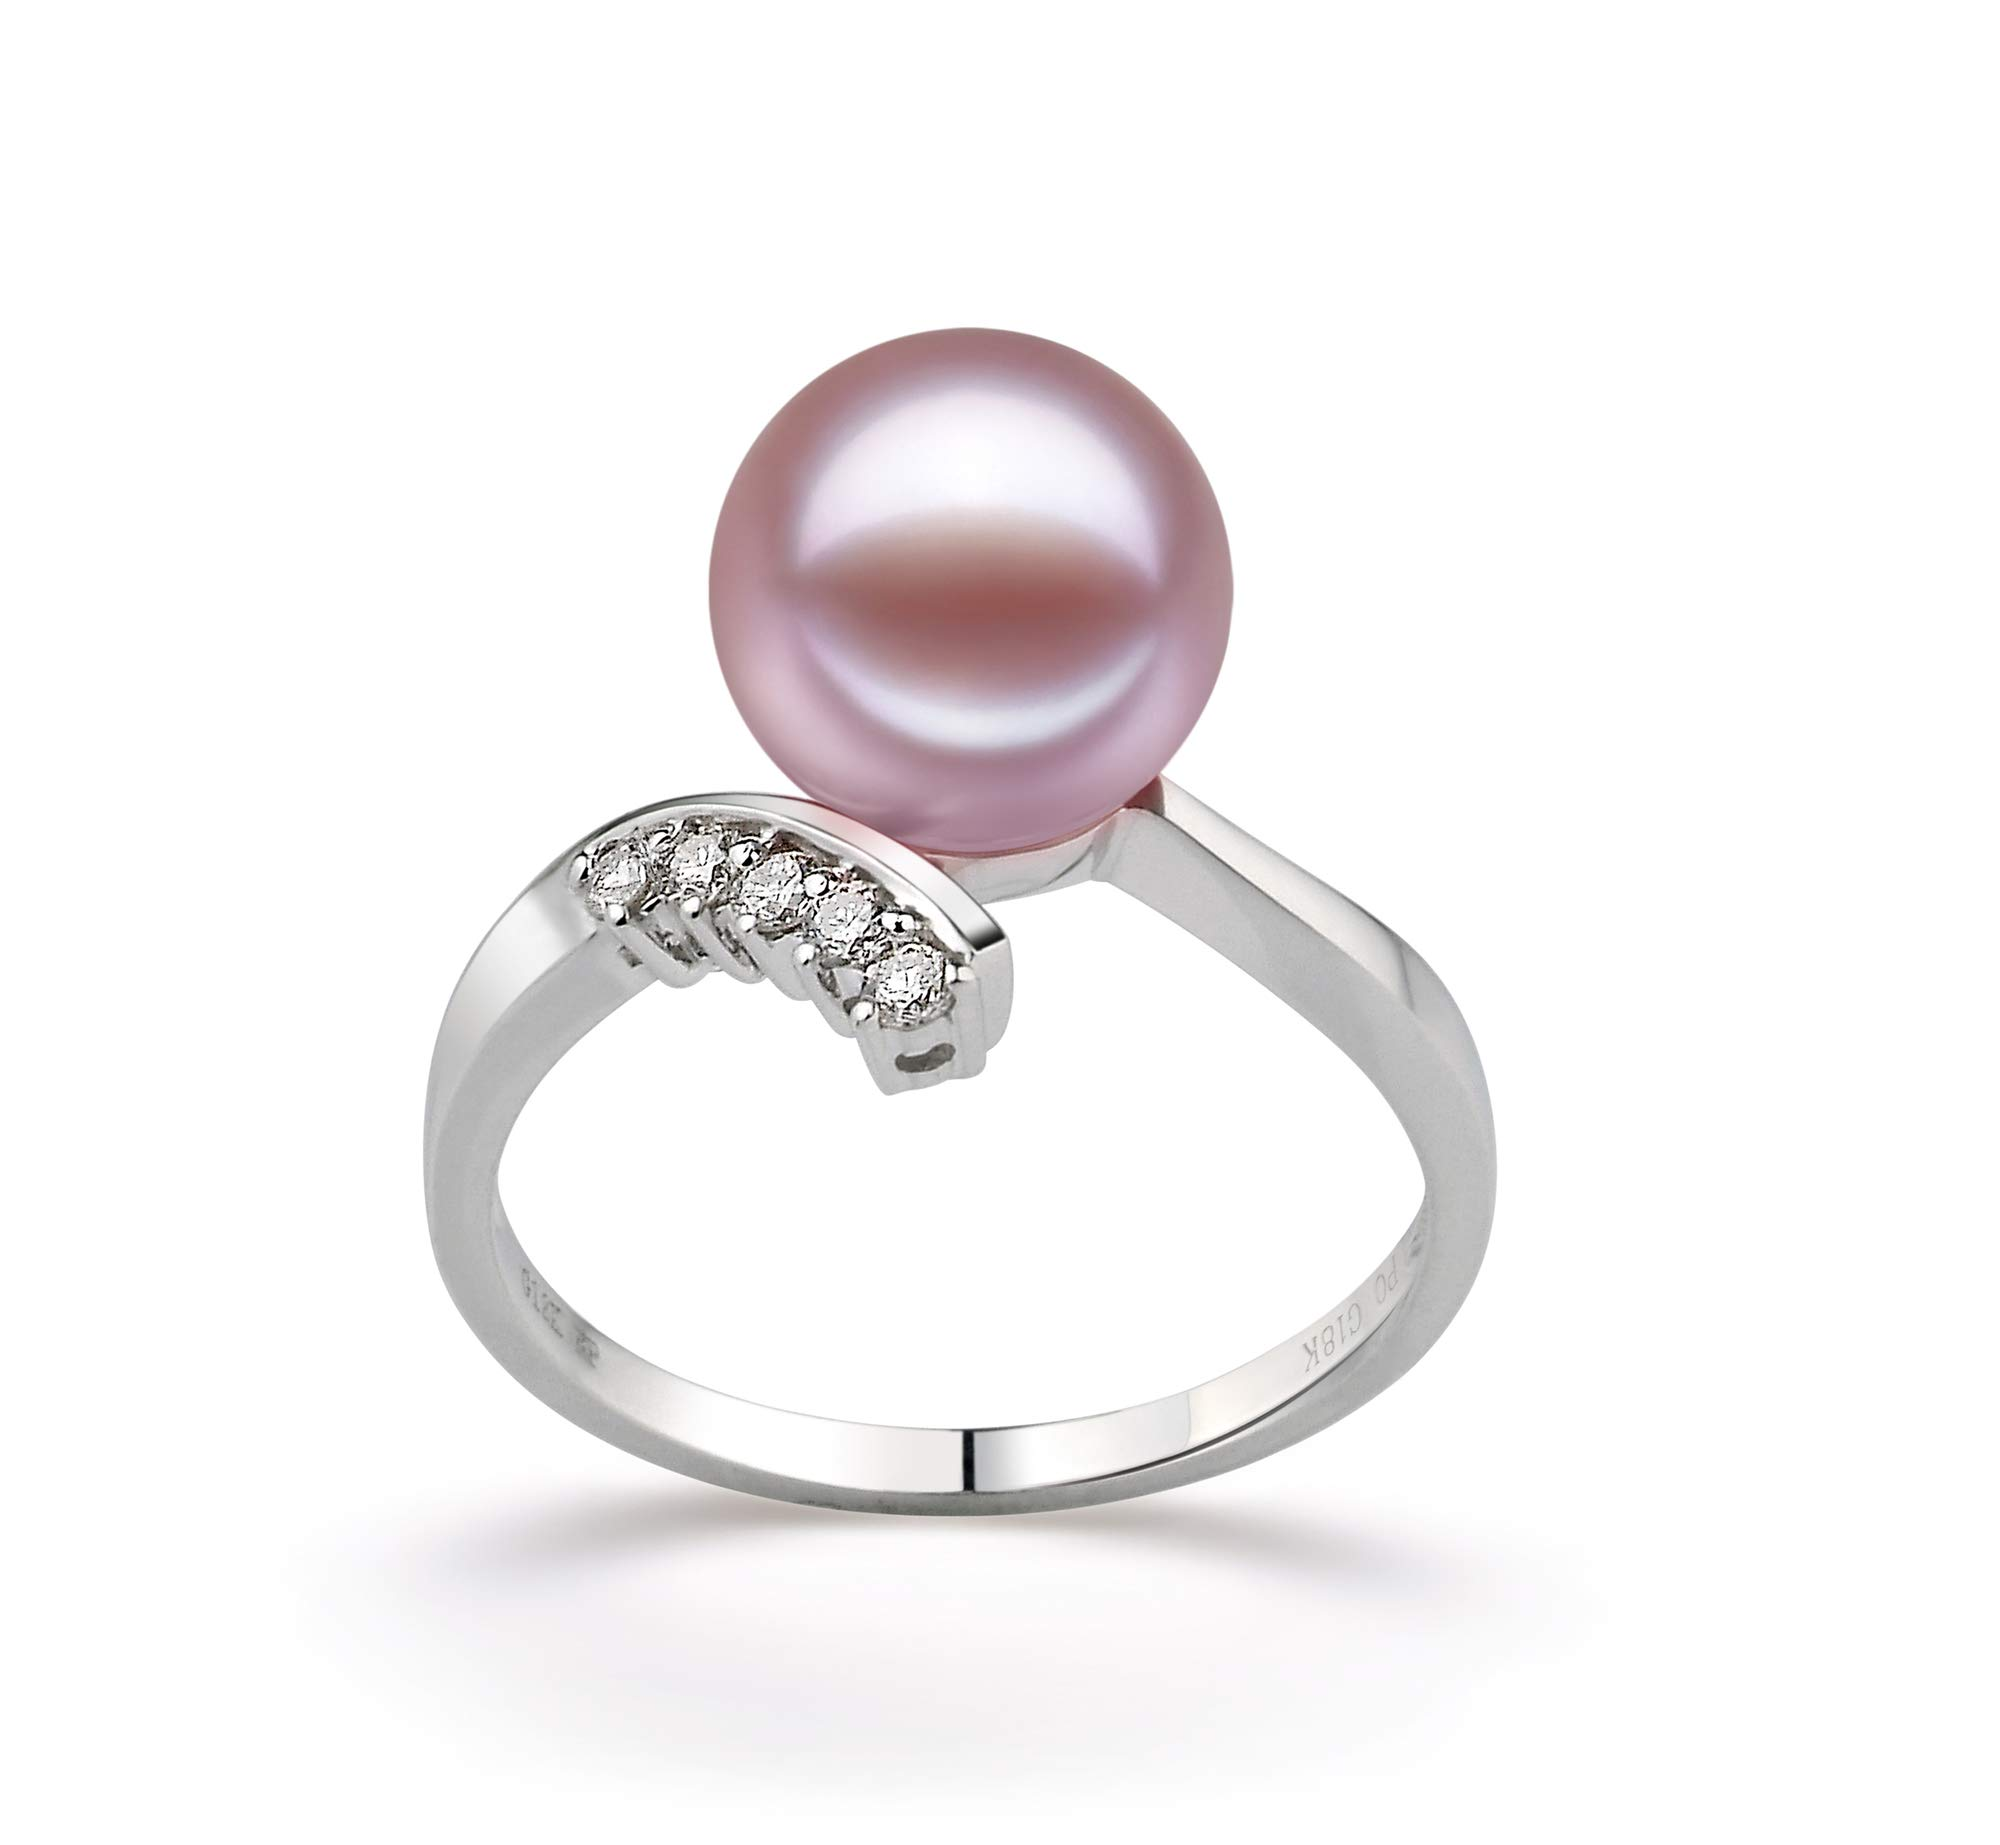 Grace Lavender 9-10mm AAAA Quality Freshwater 14K White Gold Cultured Pearl Ring For Women - Size-8